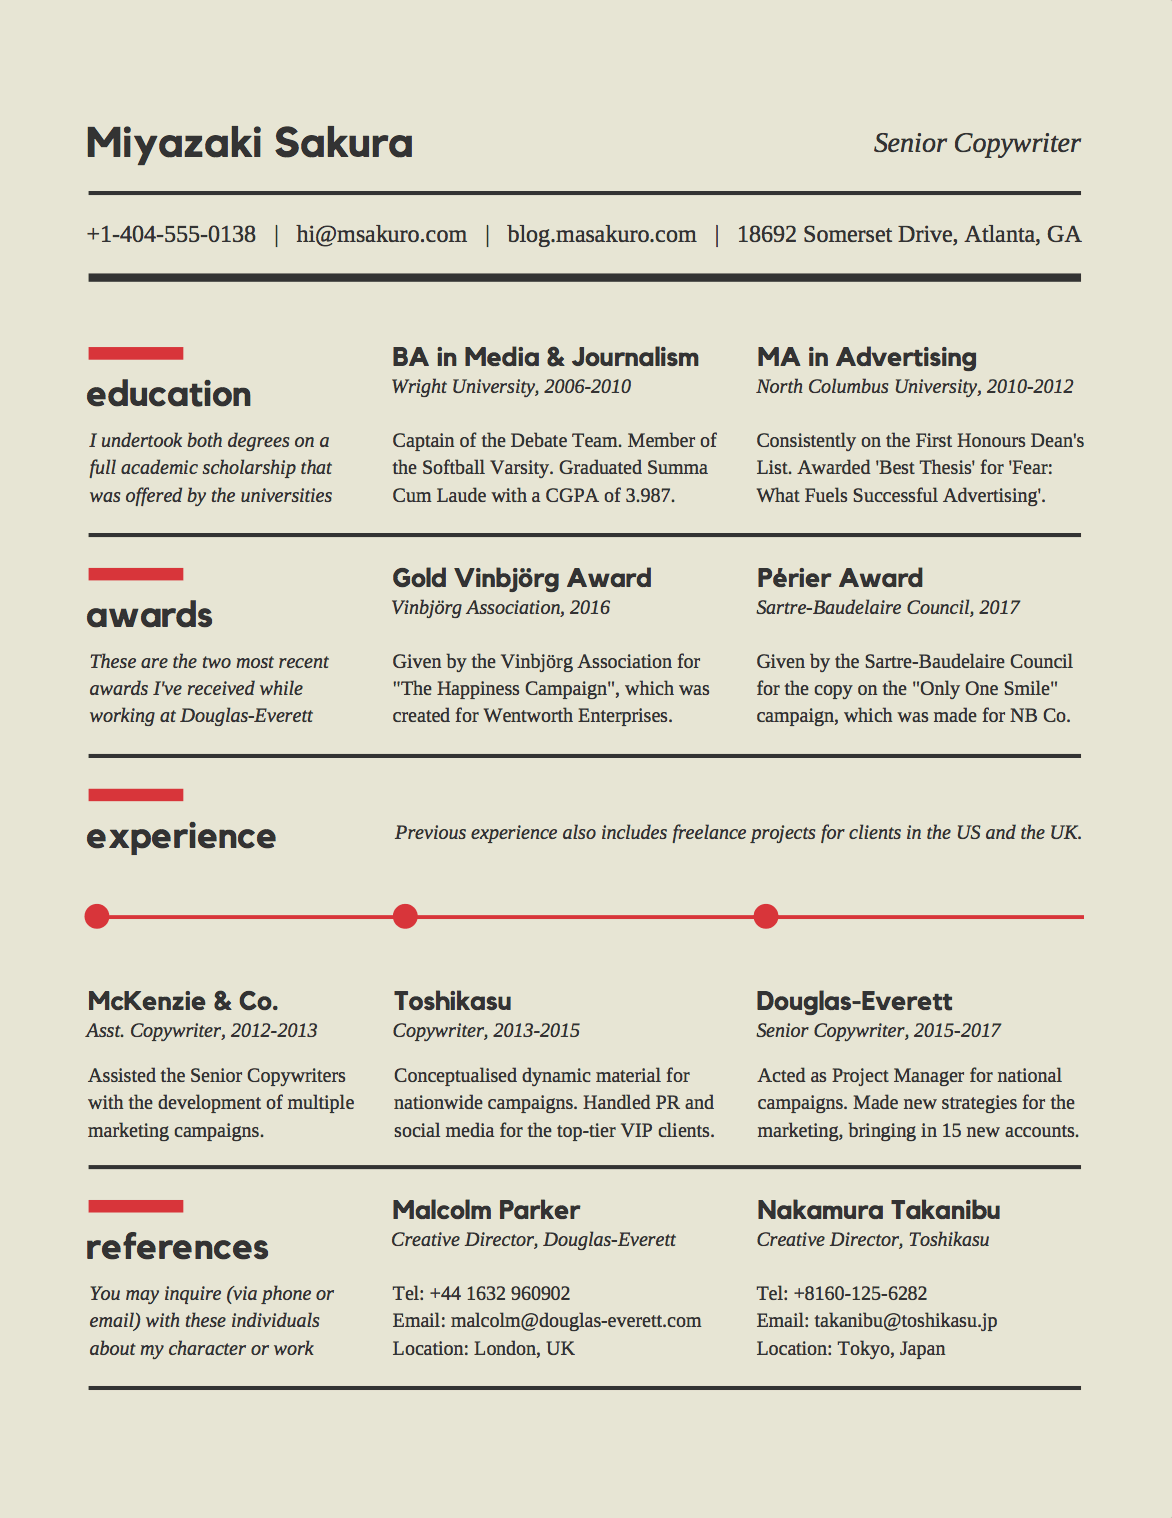 resume with accent or not